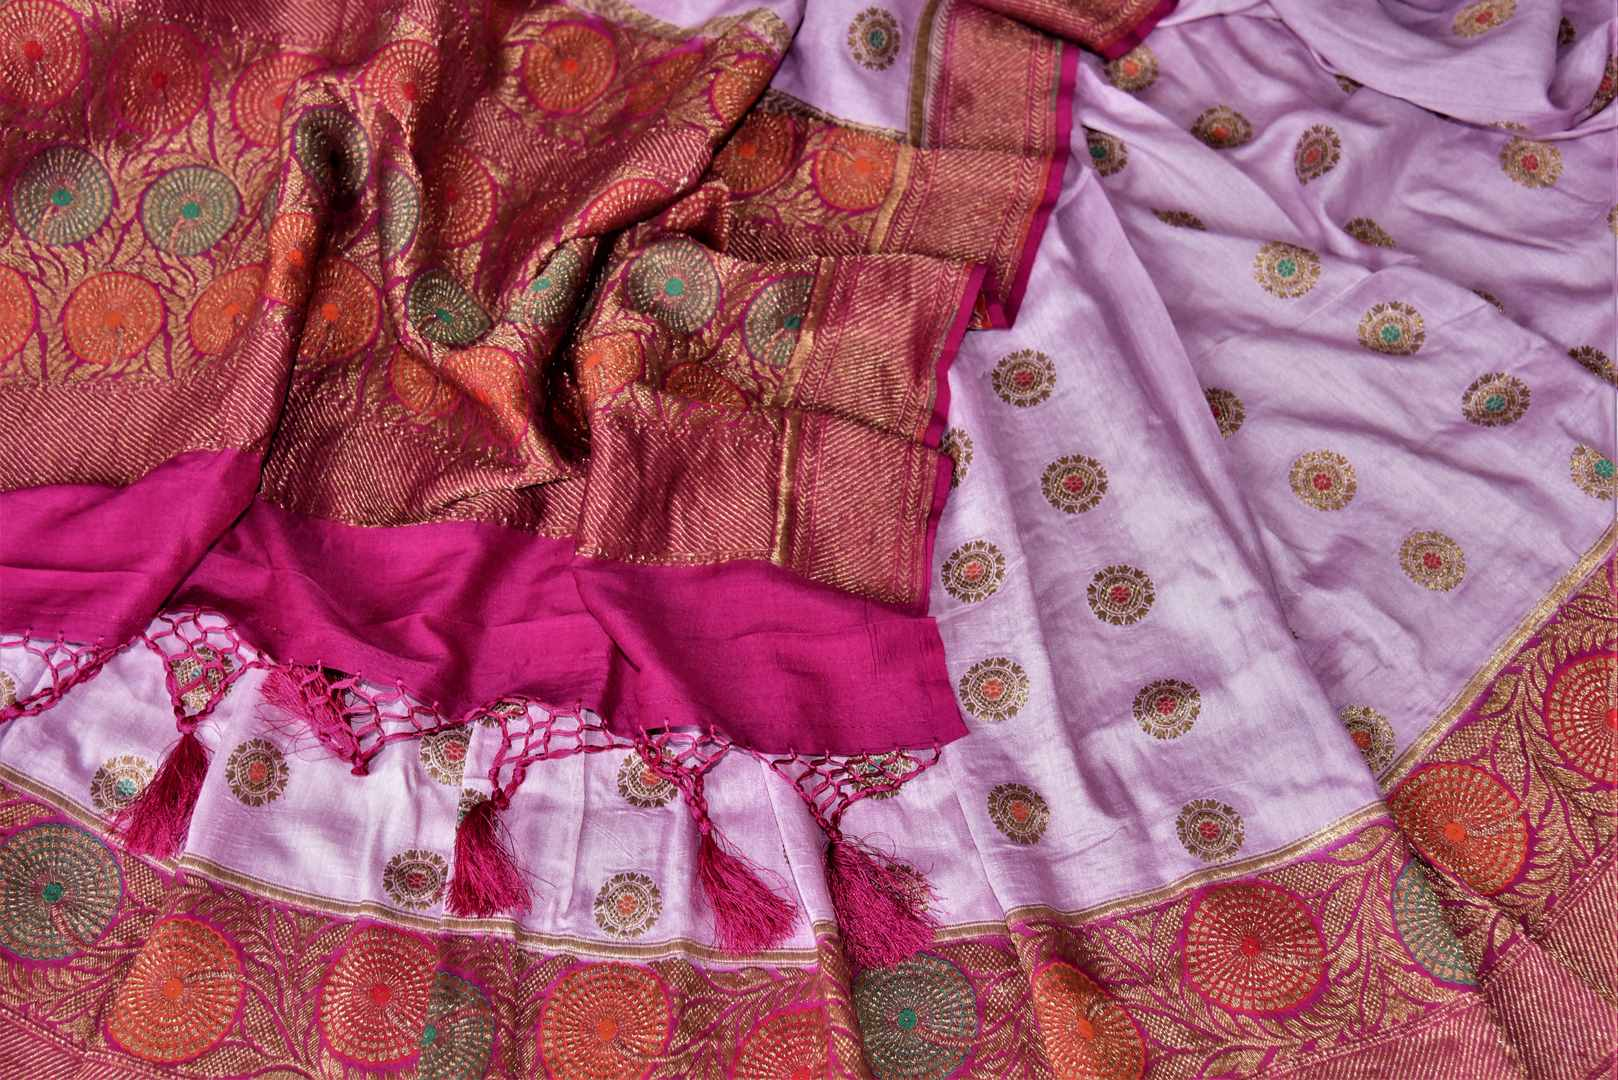 Shop lavender muga Banarasi saree online in USA with magenta antique zari floral border. Keep your ethnic style updated with latest designer sarees, handloom sarees, pure silk sarees from Pure Elegance Indian fashion store in USA.-details